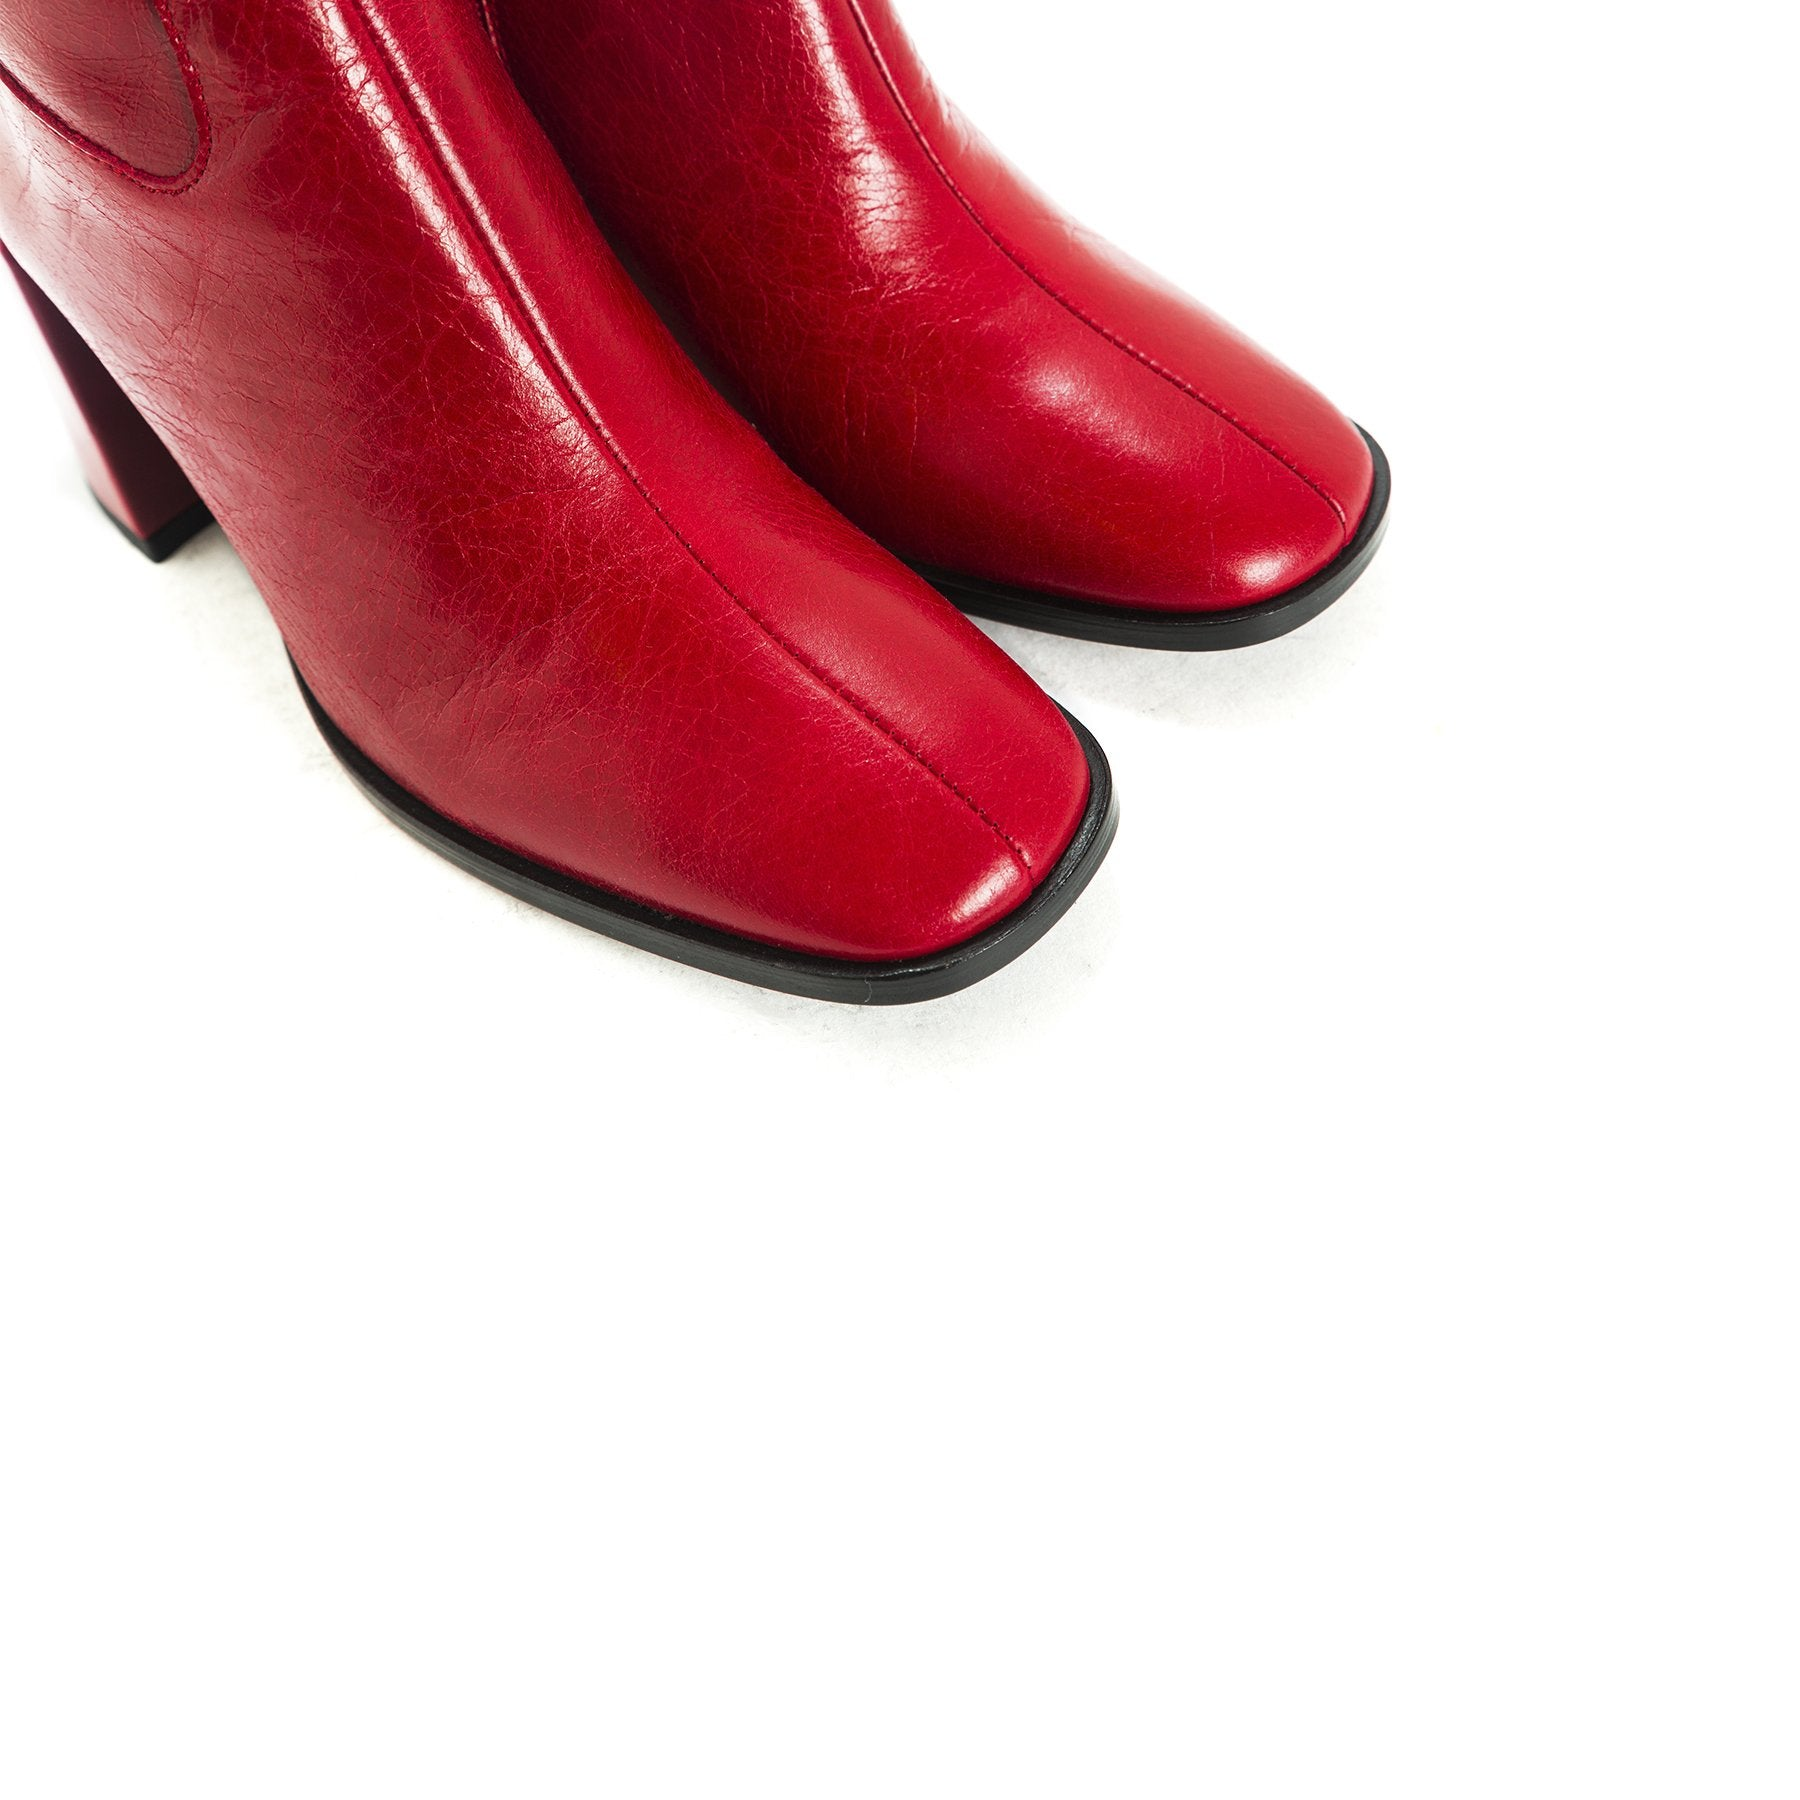 Malaga Red Leather